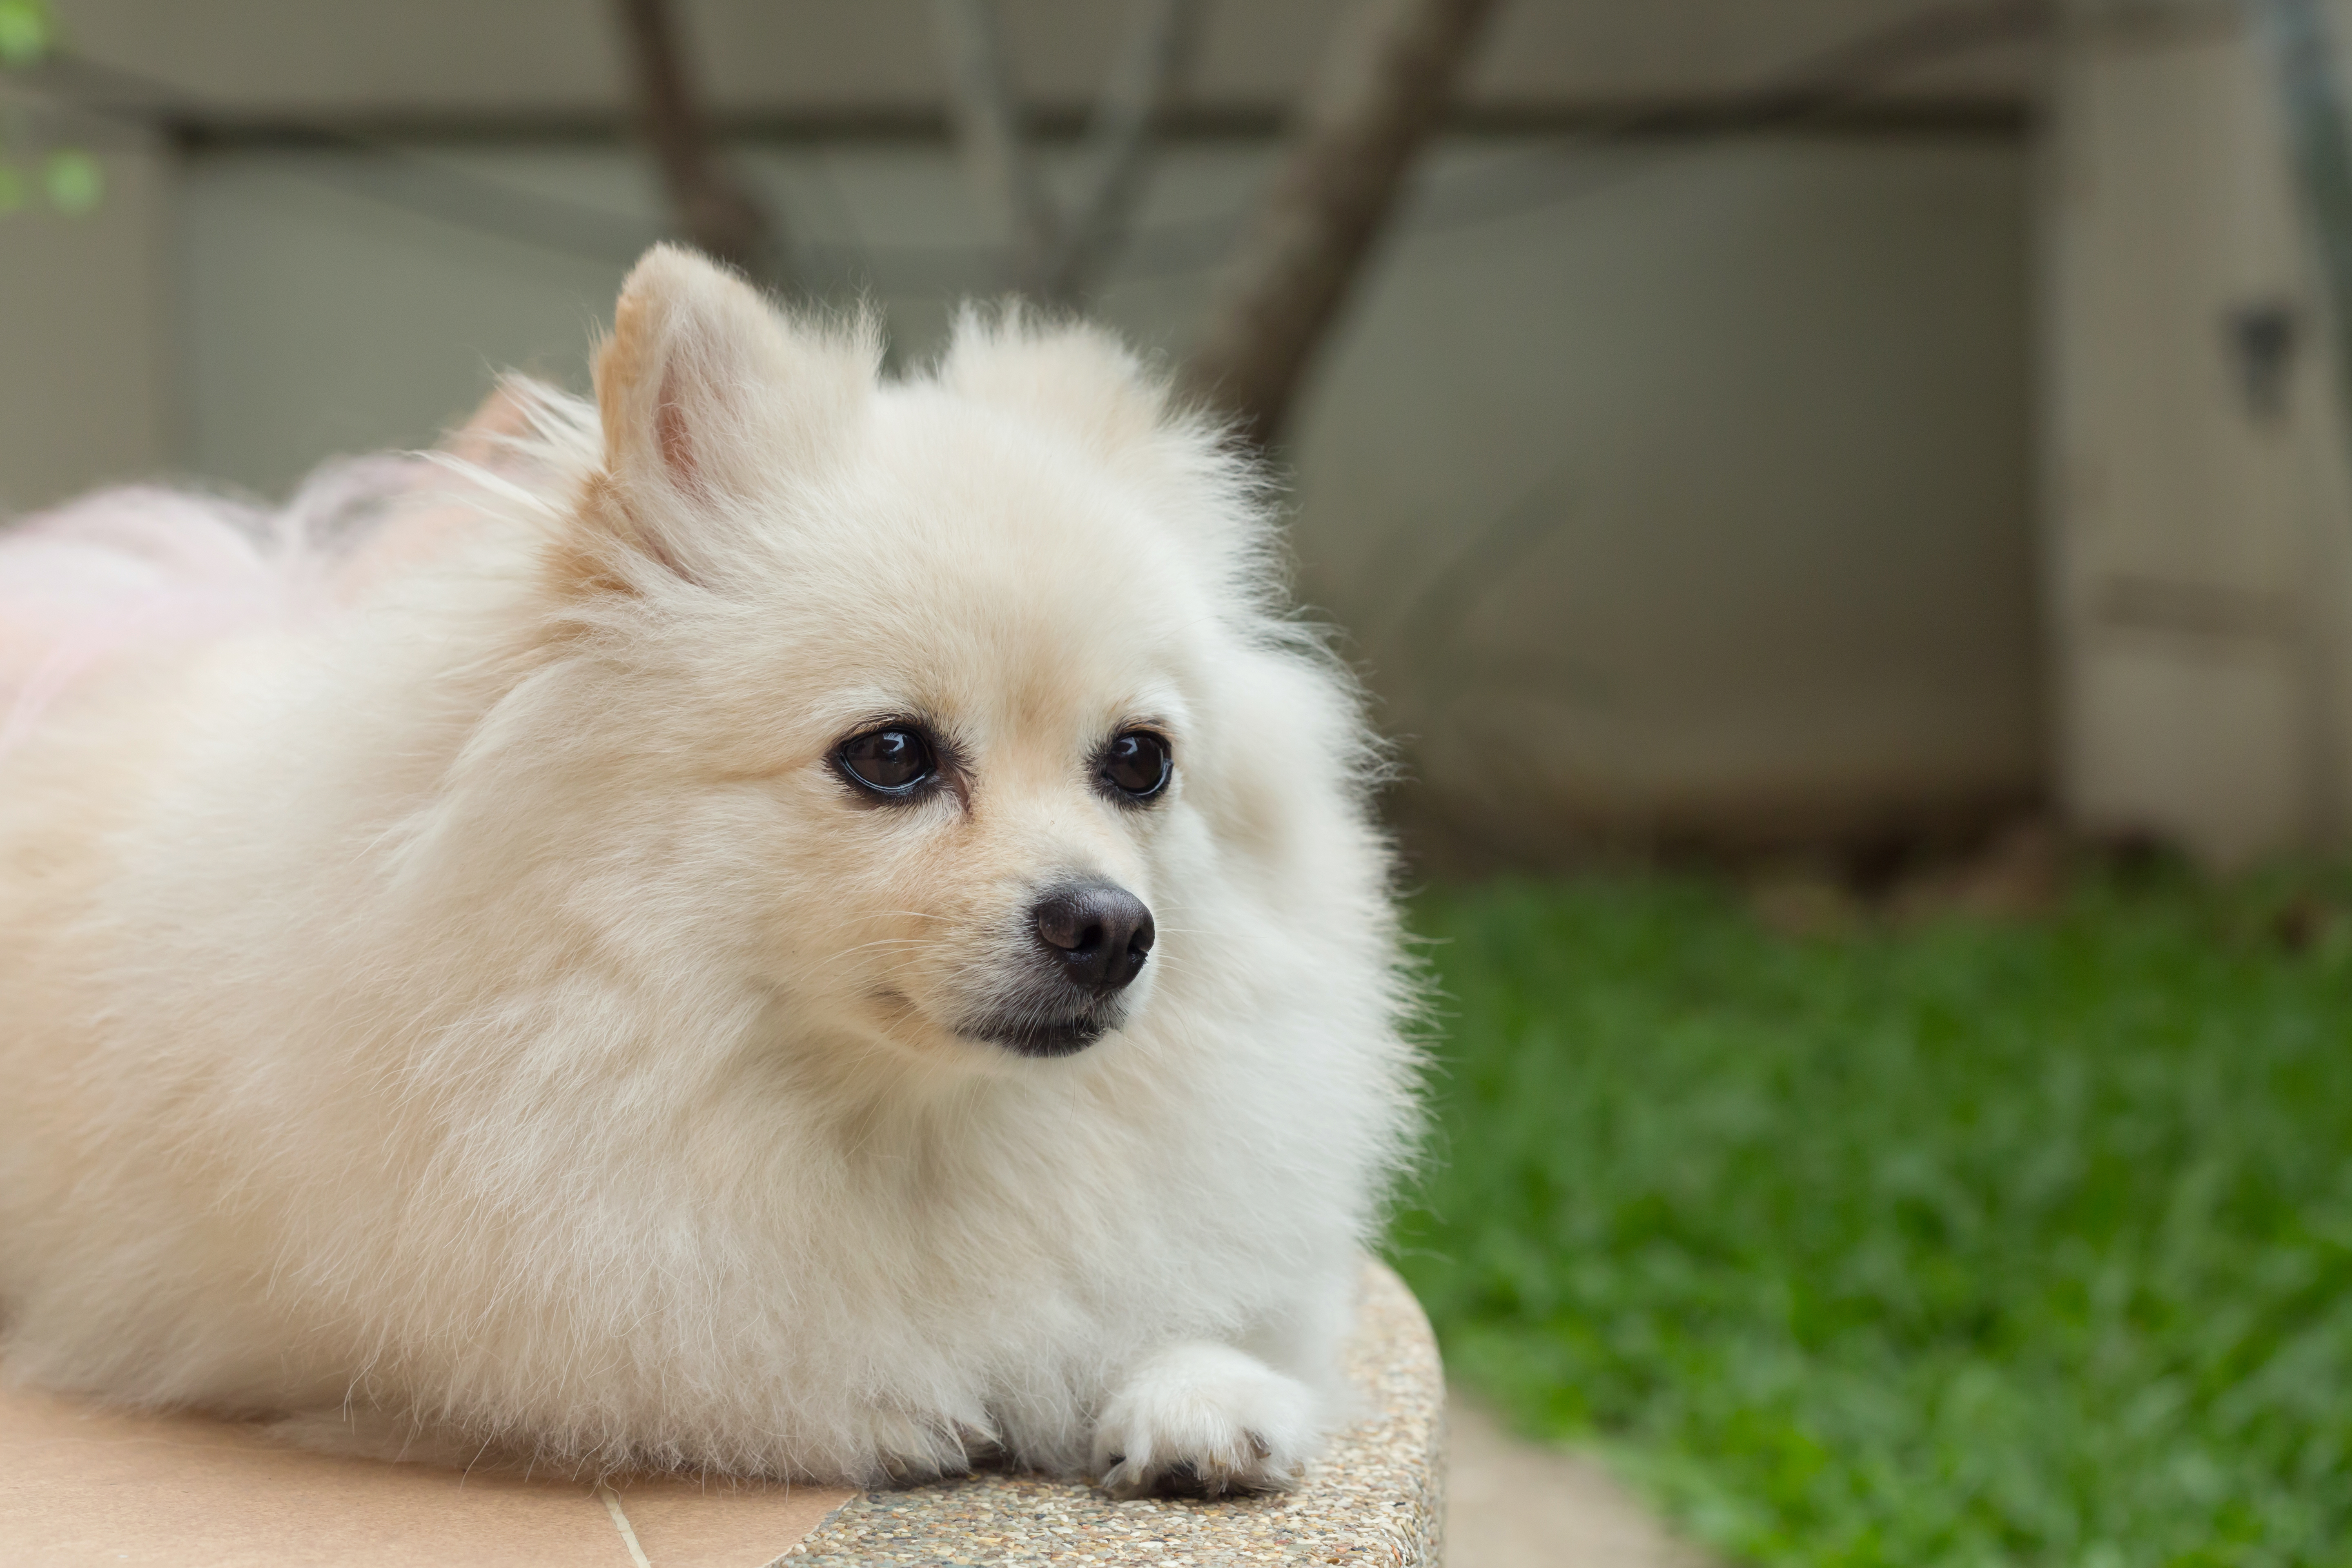 Small white fluffy dog outdoors